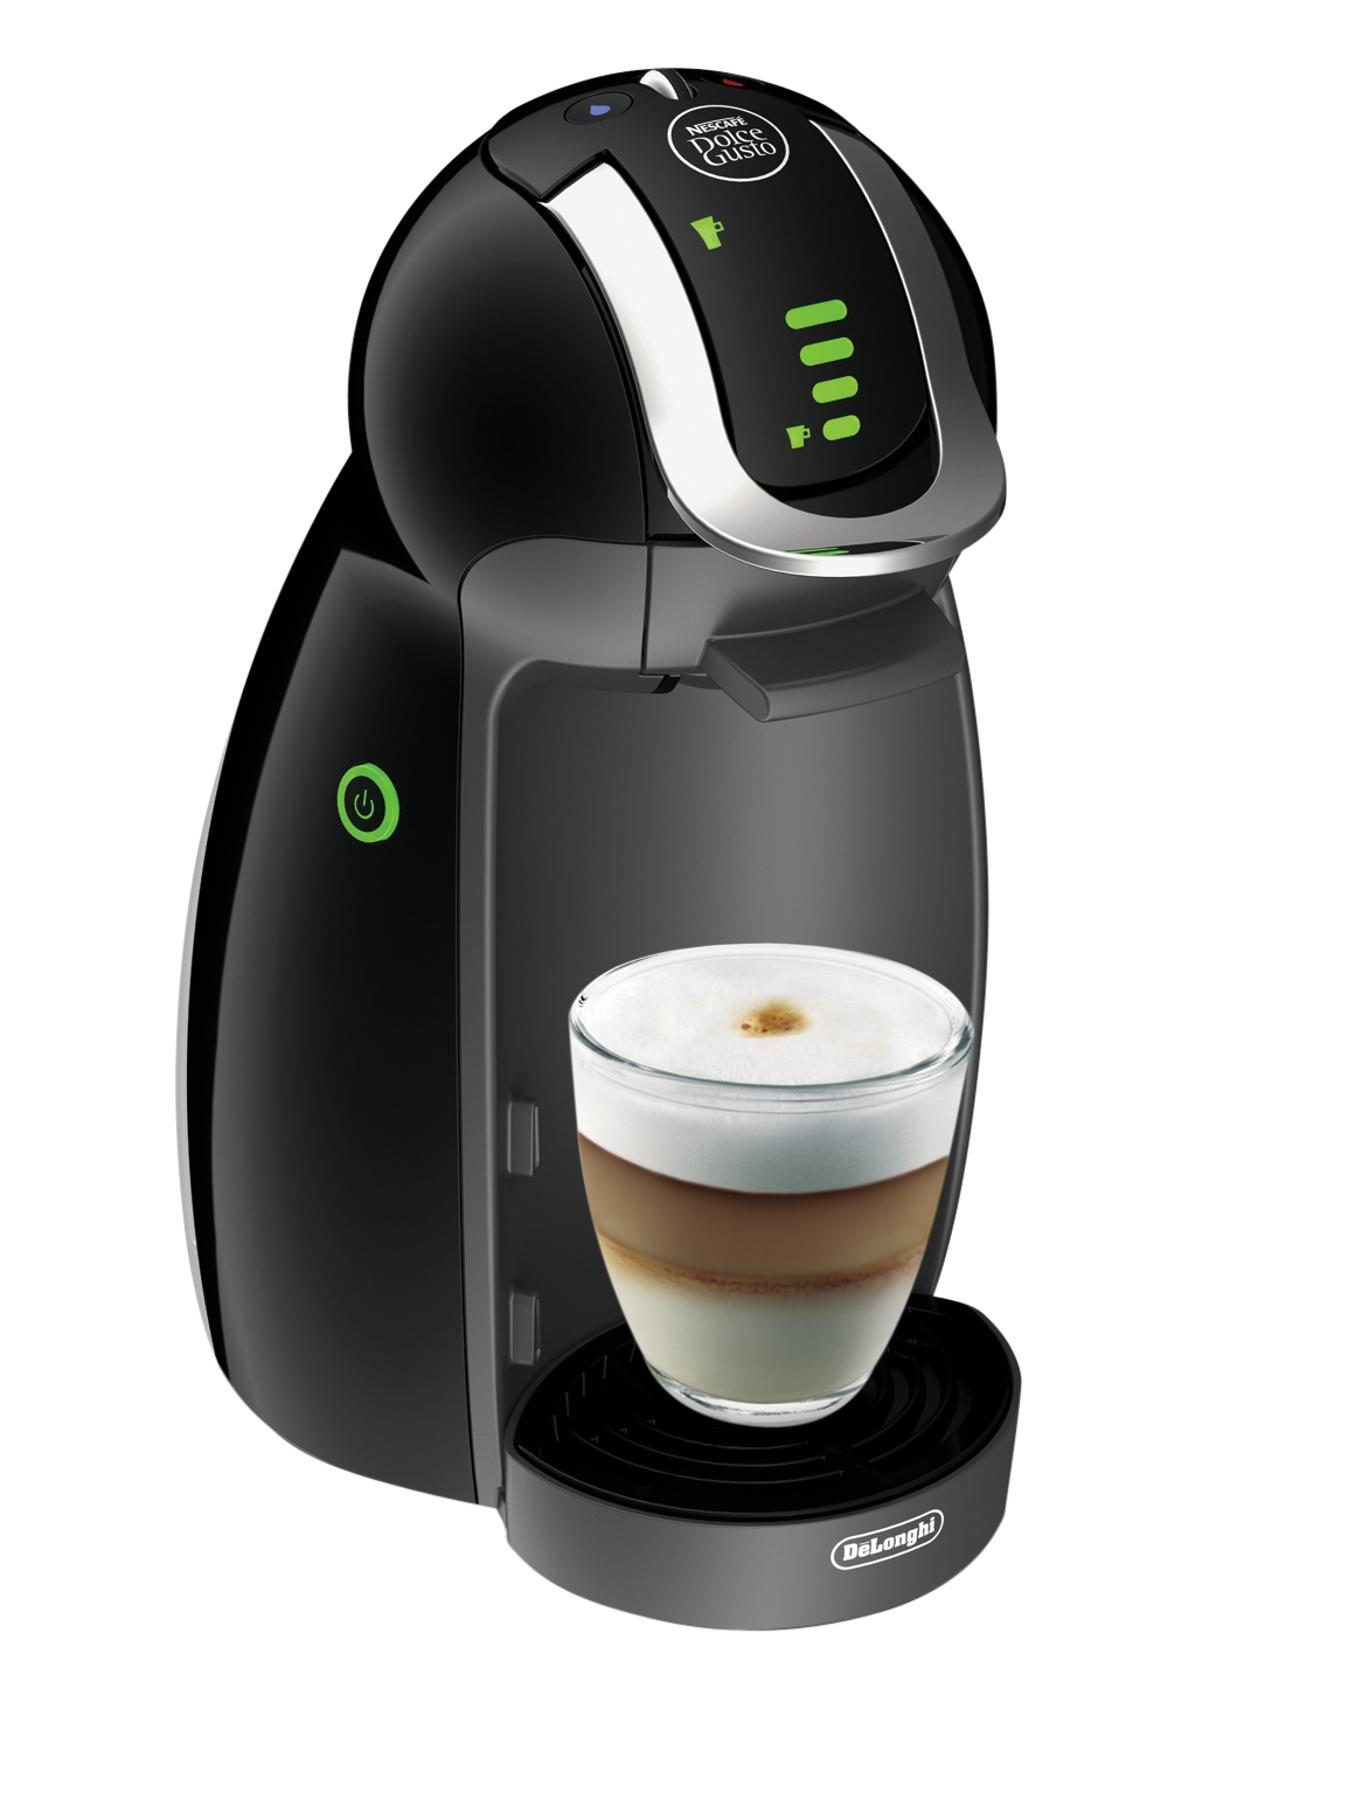 Dolce gusto coffee maker Shop for cheap Coffee Makers and Save online